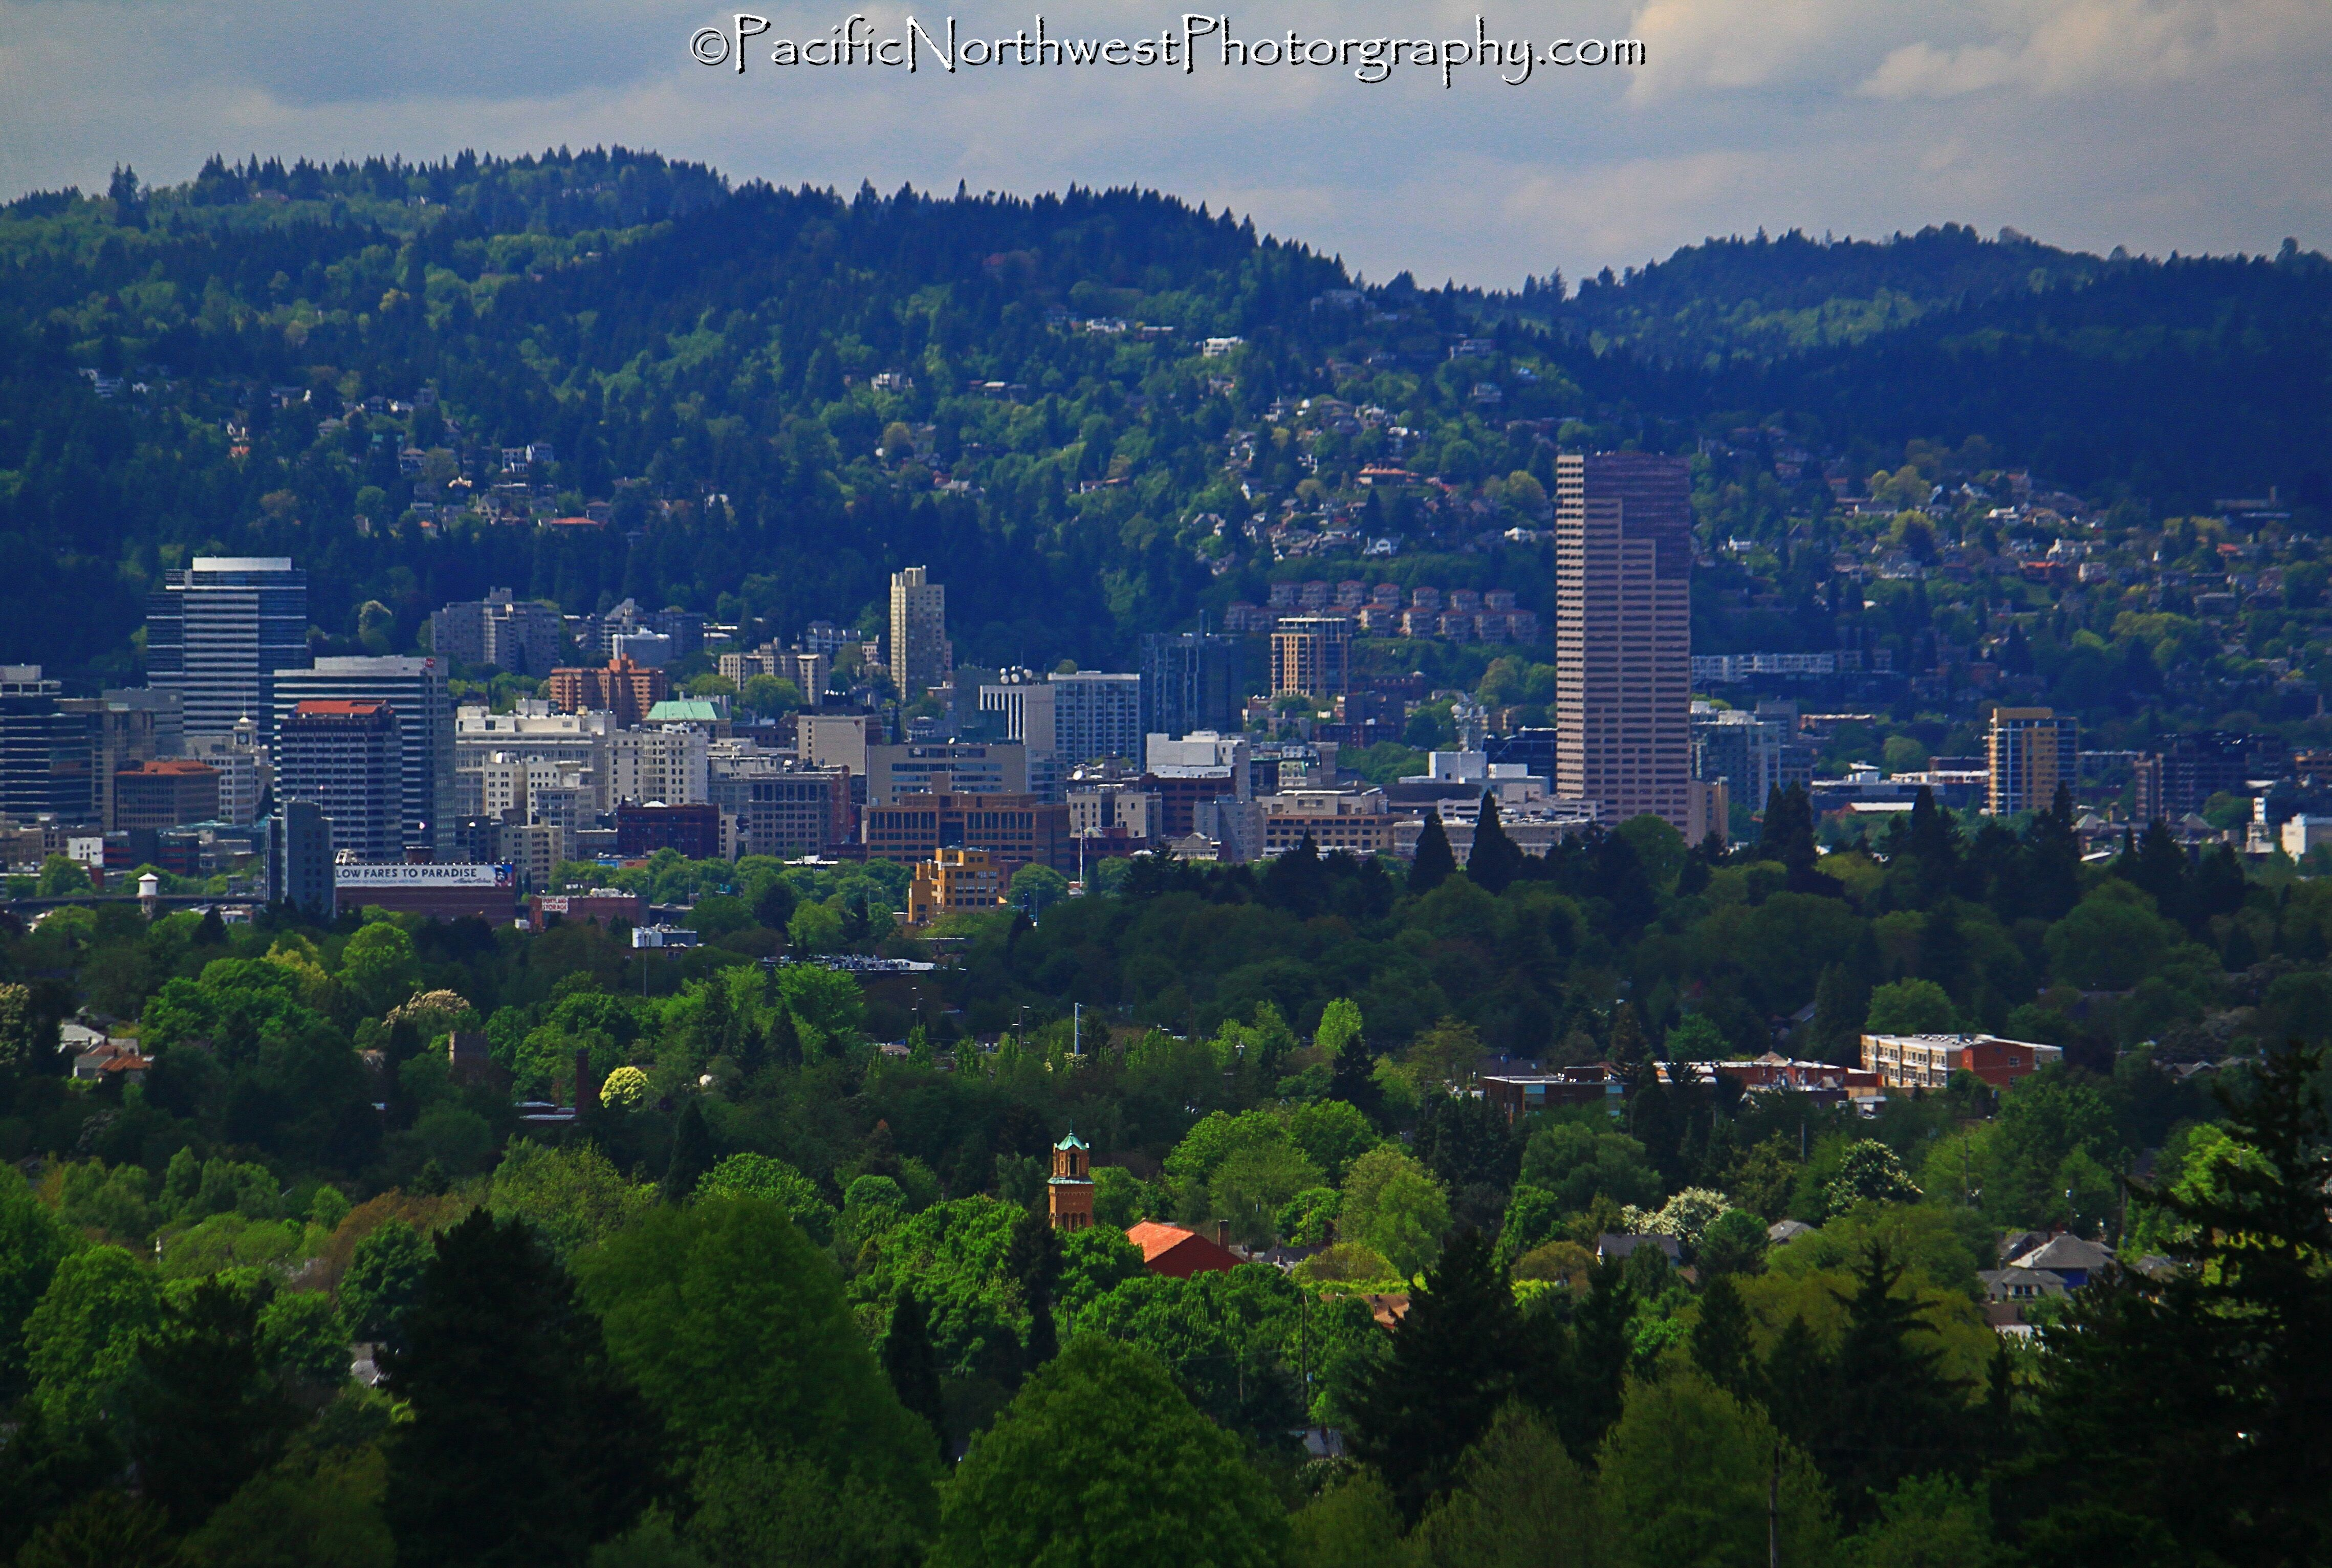 A sea of green surrounding Portland, OR